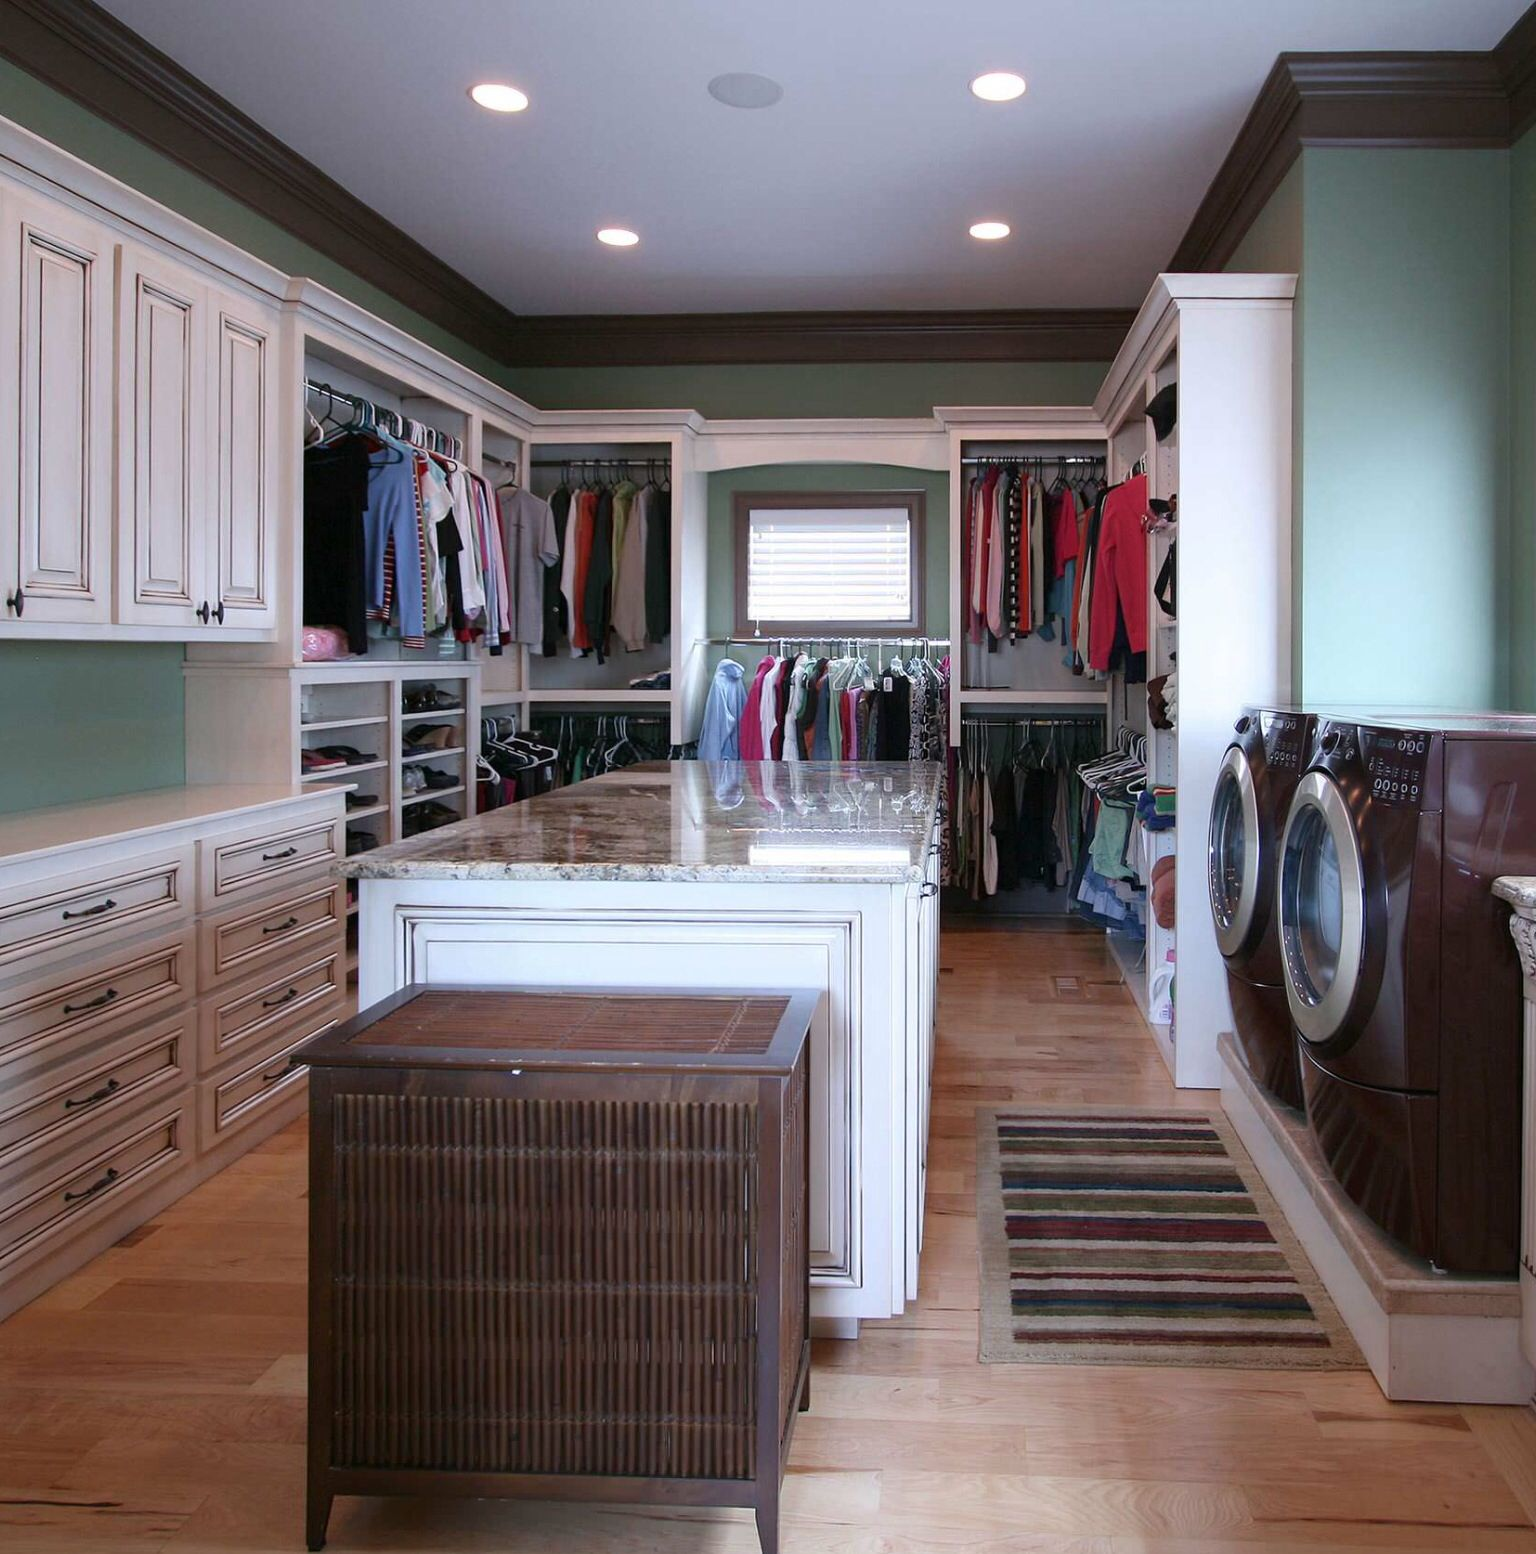 I Love The Washer And Dryer In The Master Bedroom Closet Makes Perfect Sense Closet Bedroom Dream Laundry Room Family Closet